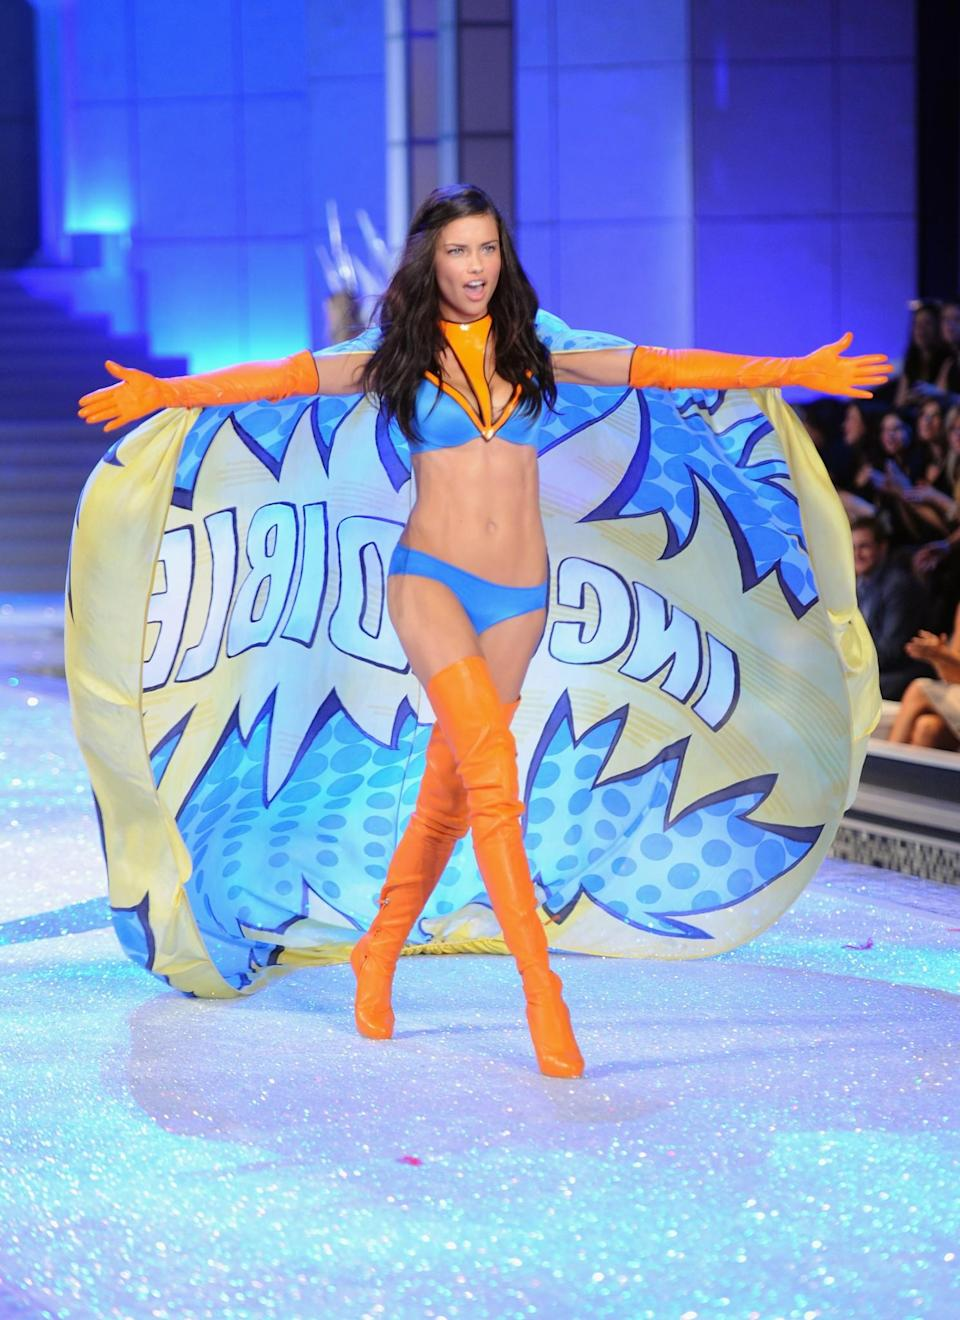 <p>Adriana Lima hit headlines for looking incredible in this cartoon inspired outfit. [Photo: Getty] </p>